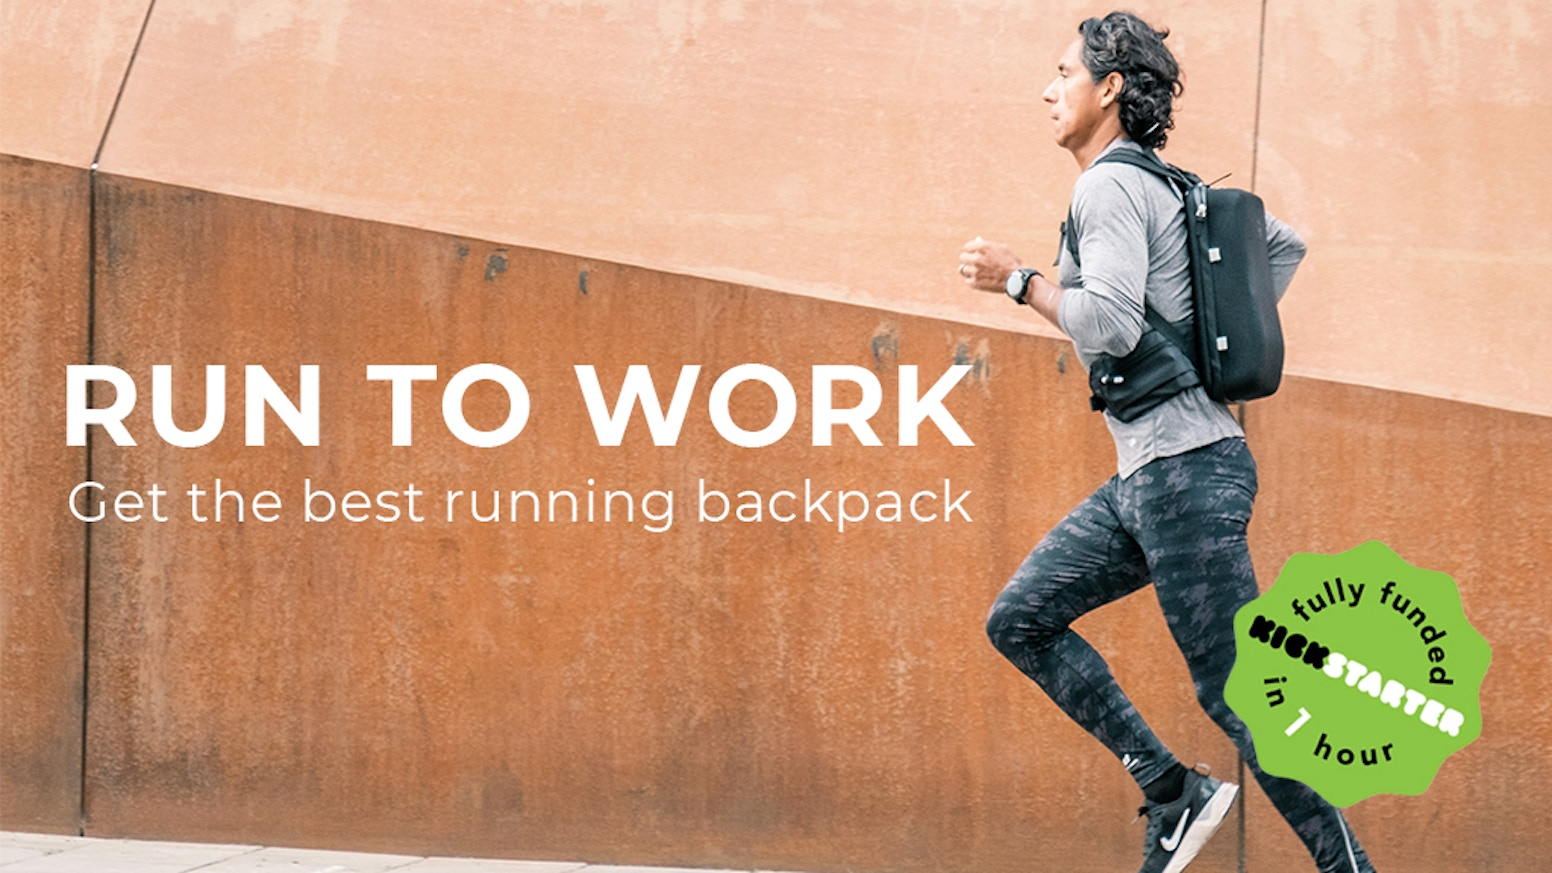 Fusing sport gear with Scandinavian design, this running backpack steps up your daily run commute. Anti-bounce. Lightweight. Ergonomic.